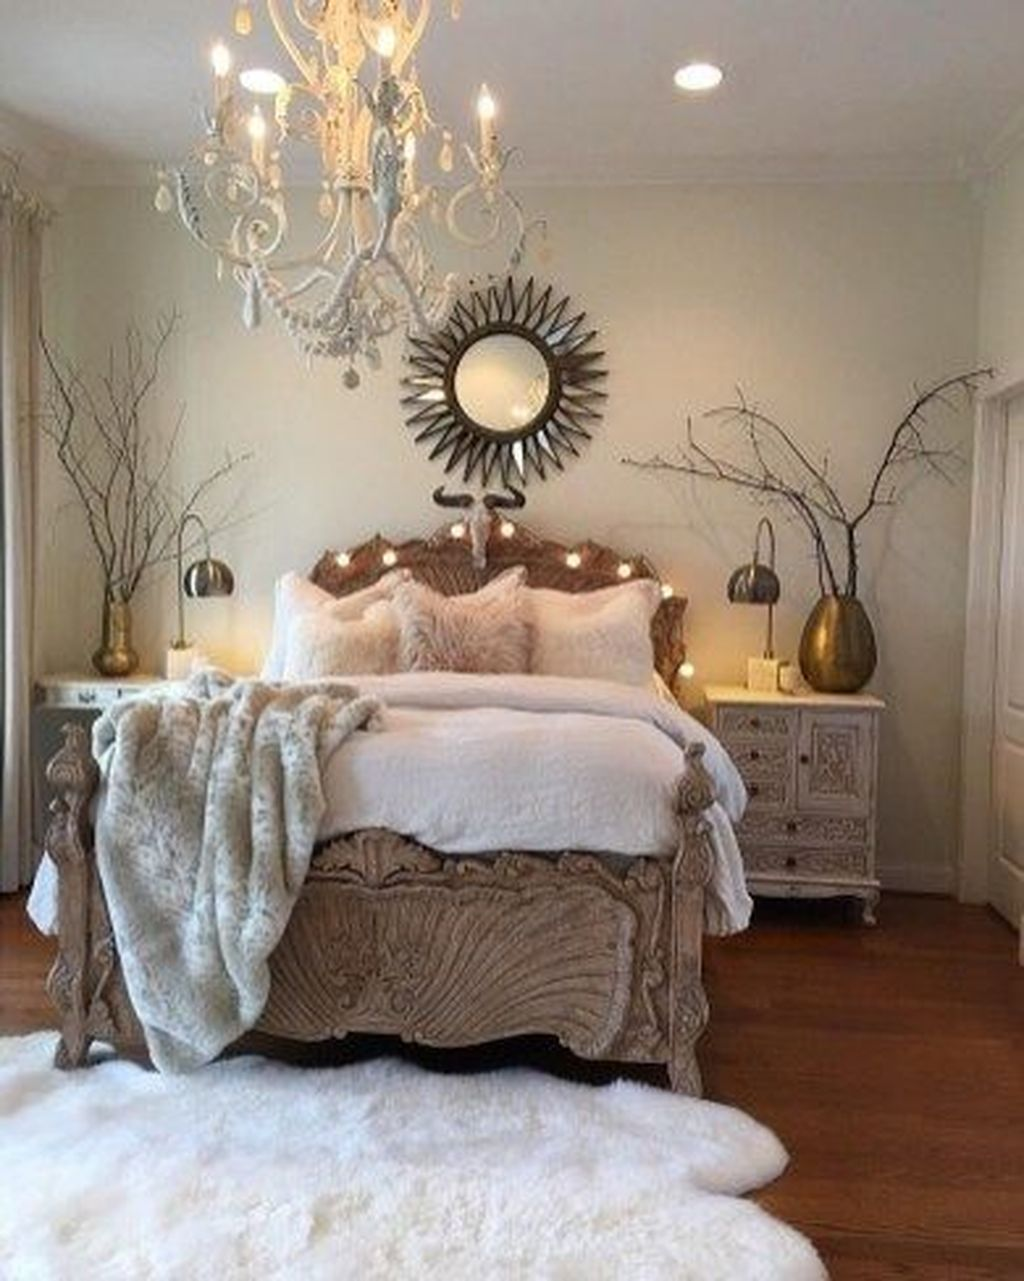 The Best Small Master Bedroom Design Ideas WIth Farmhouse Style 21